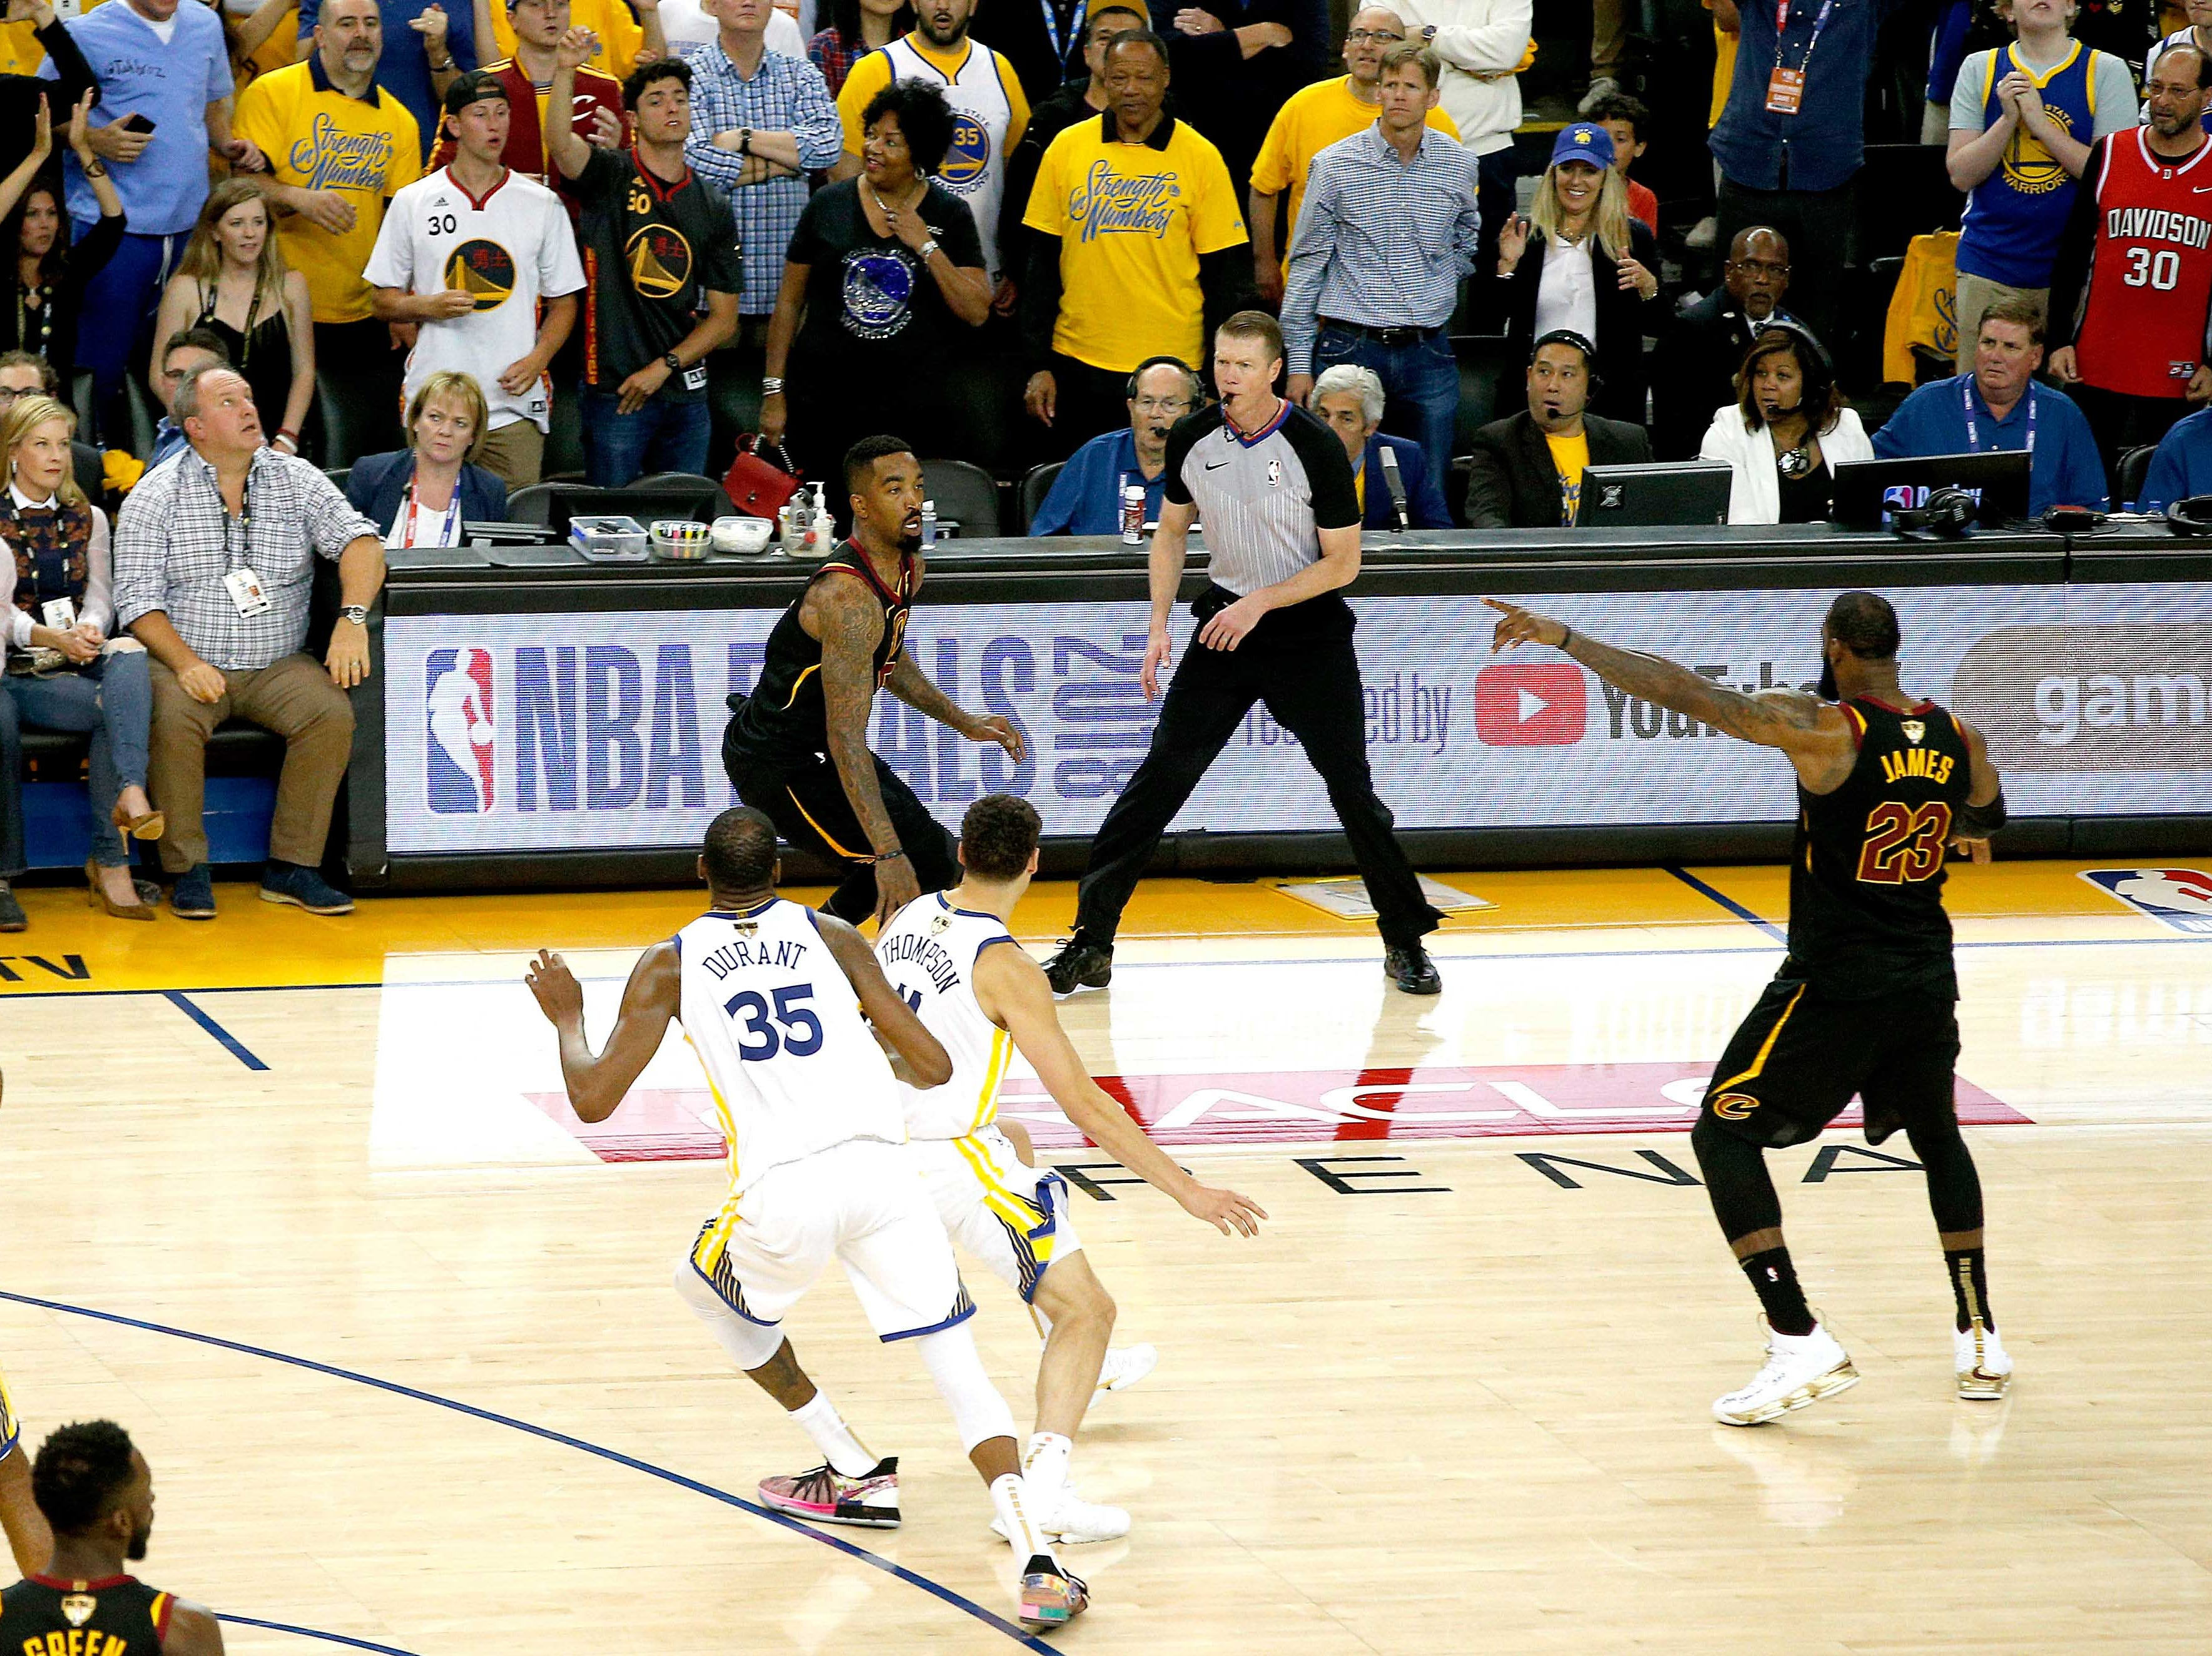 May 31: Cleveland Cavaliers guard JR Smith commits his now-infamous gaffe late in Game 1 of the NBA Finals against the Golden State Warriors.